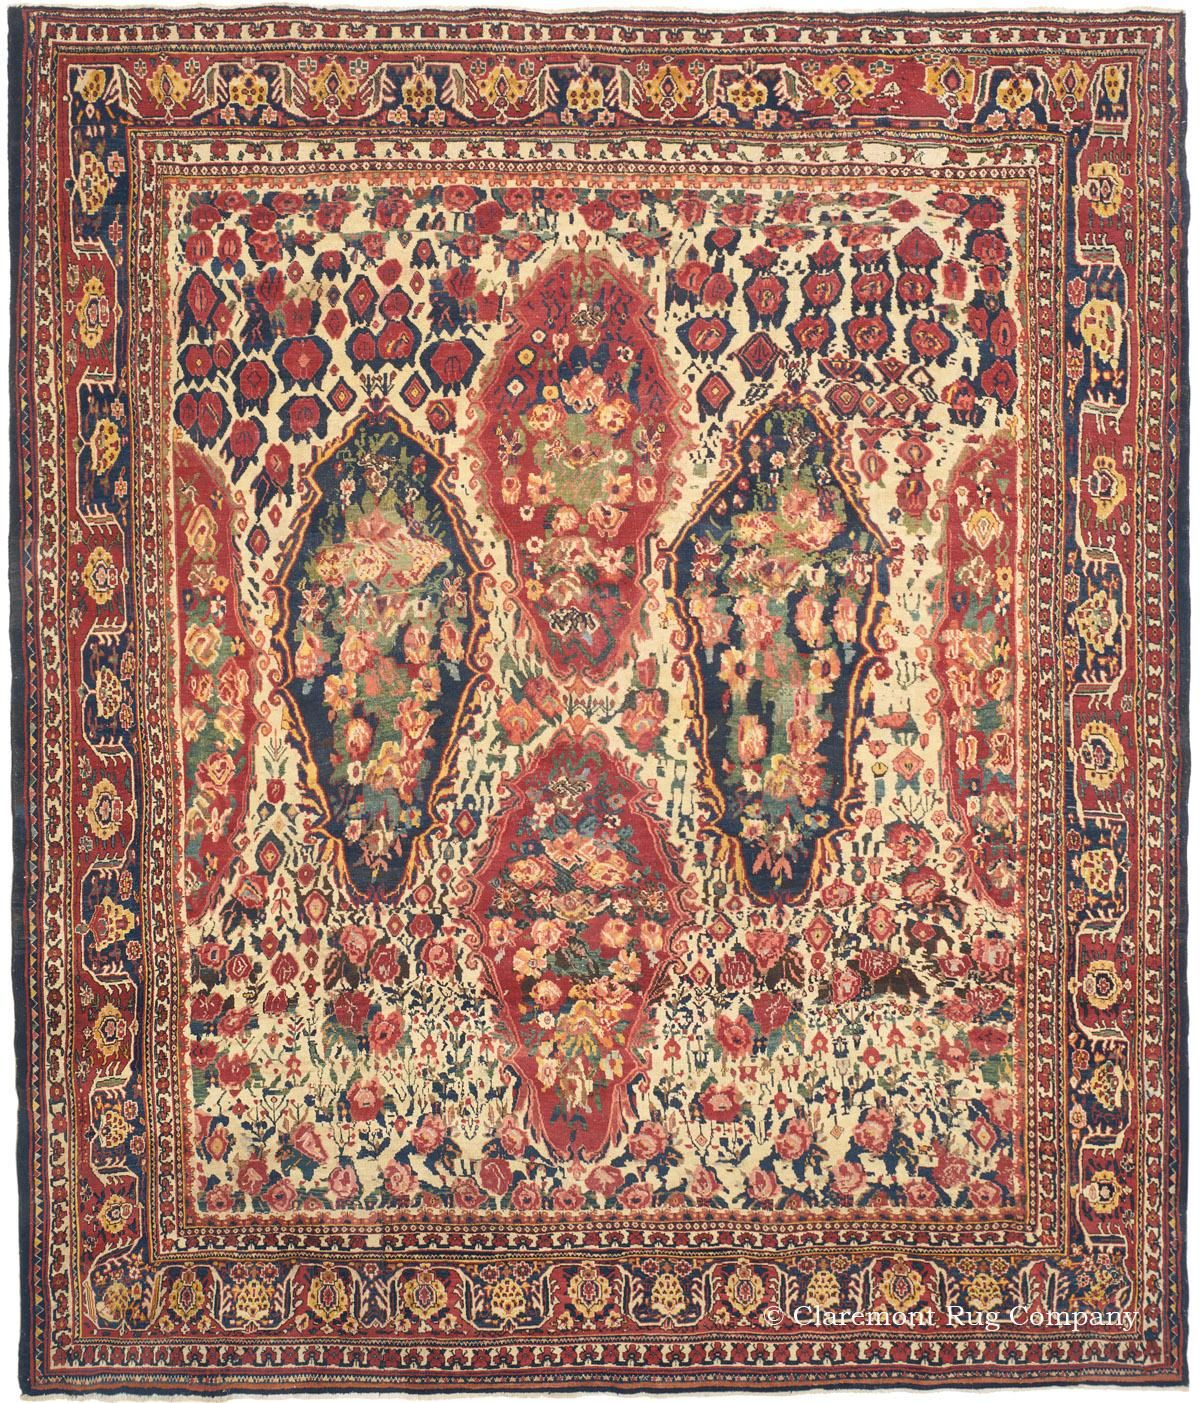 Bakhtiari Central Persian 10ft 3in X 12ft 5in 3rd Quarter 19th Century Antique Persian Carpet Rugs On Carpet Antique Rugs Persian Carpet